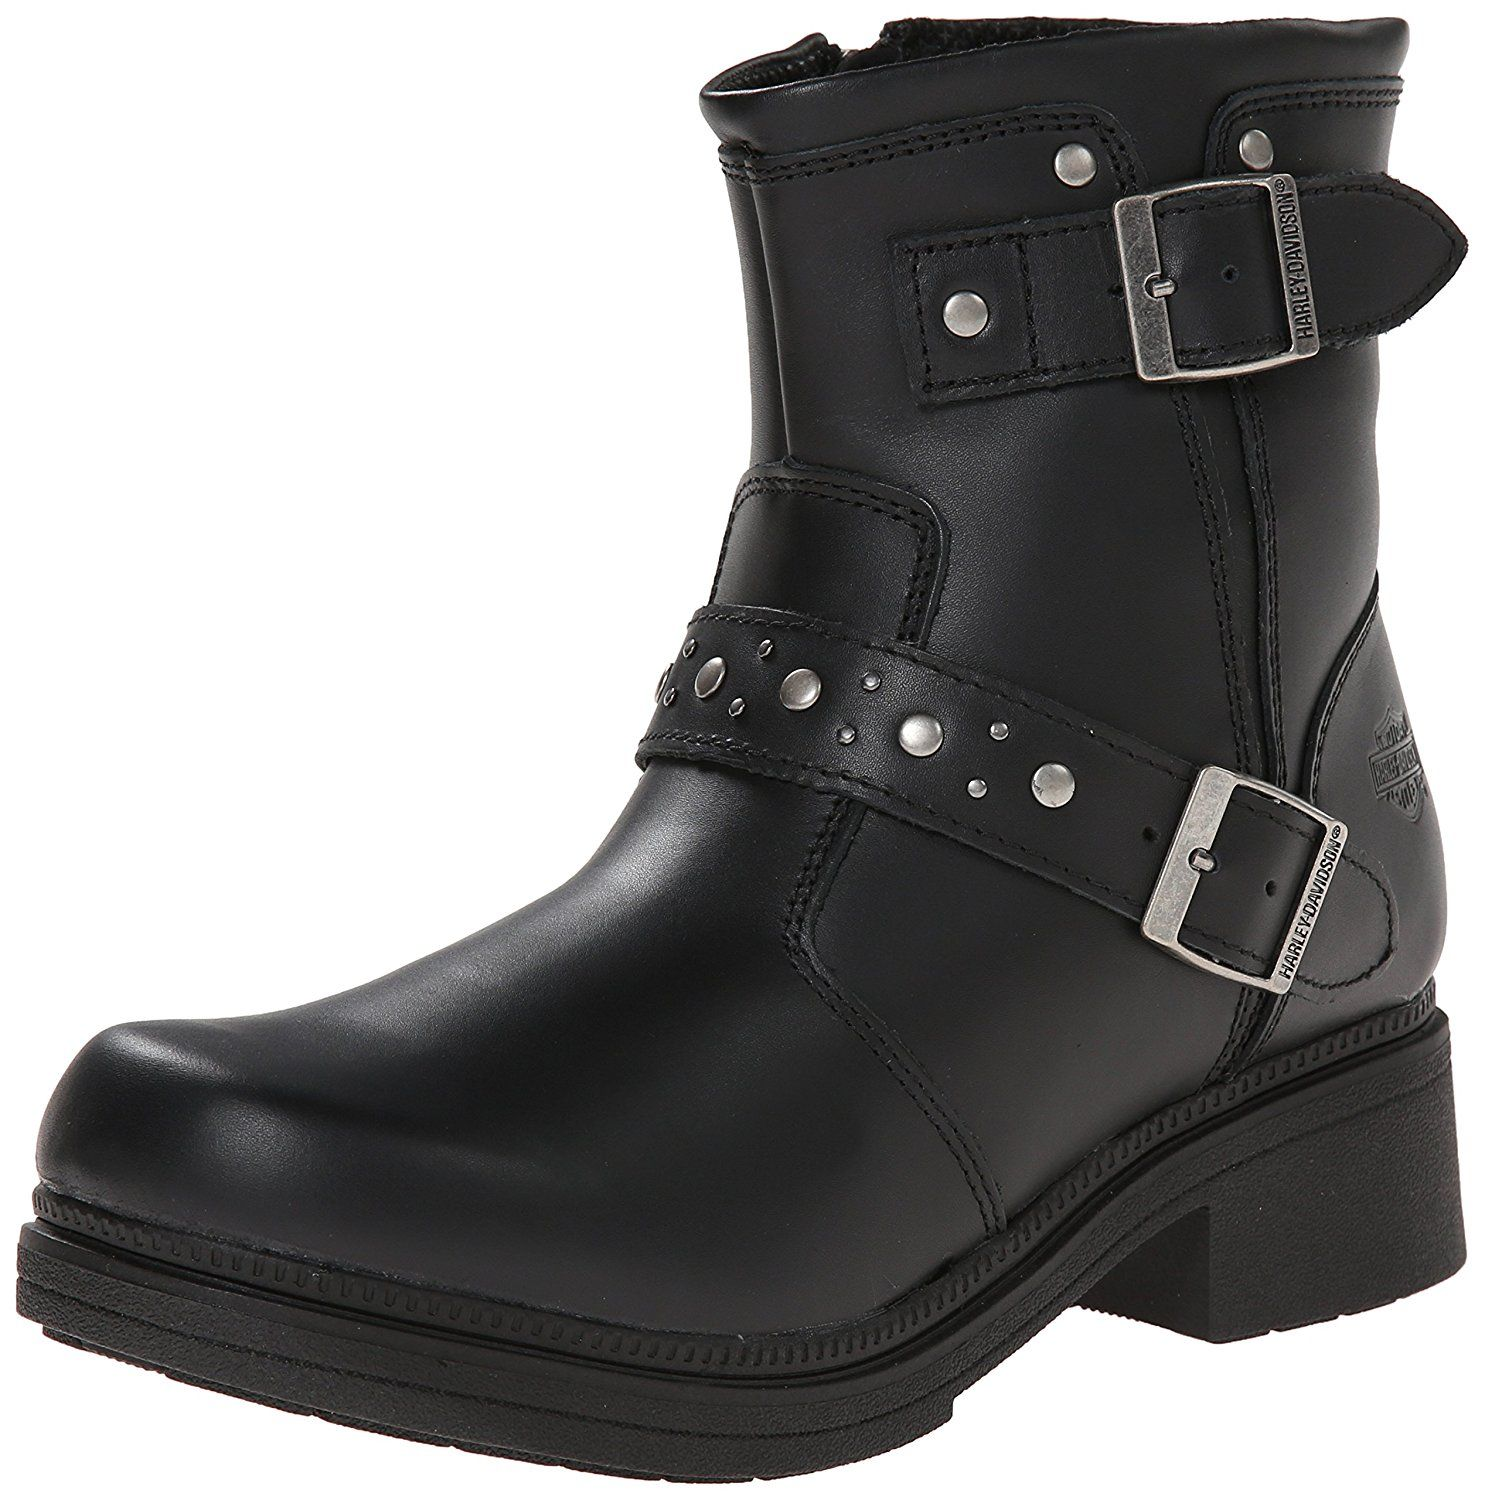 6c5f3cc8fe60 Harley-Davidson Women s London Motorcycle Boot -- A special product just  for you. See it now!   Boots